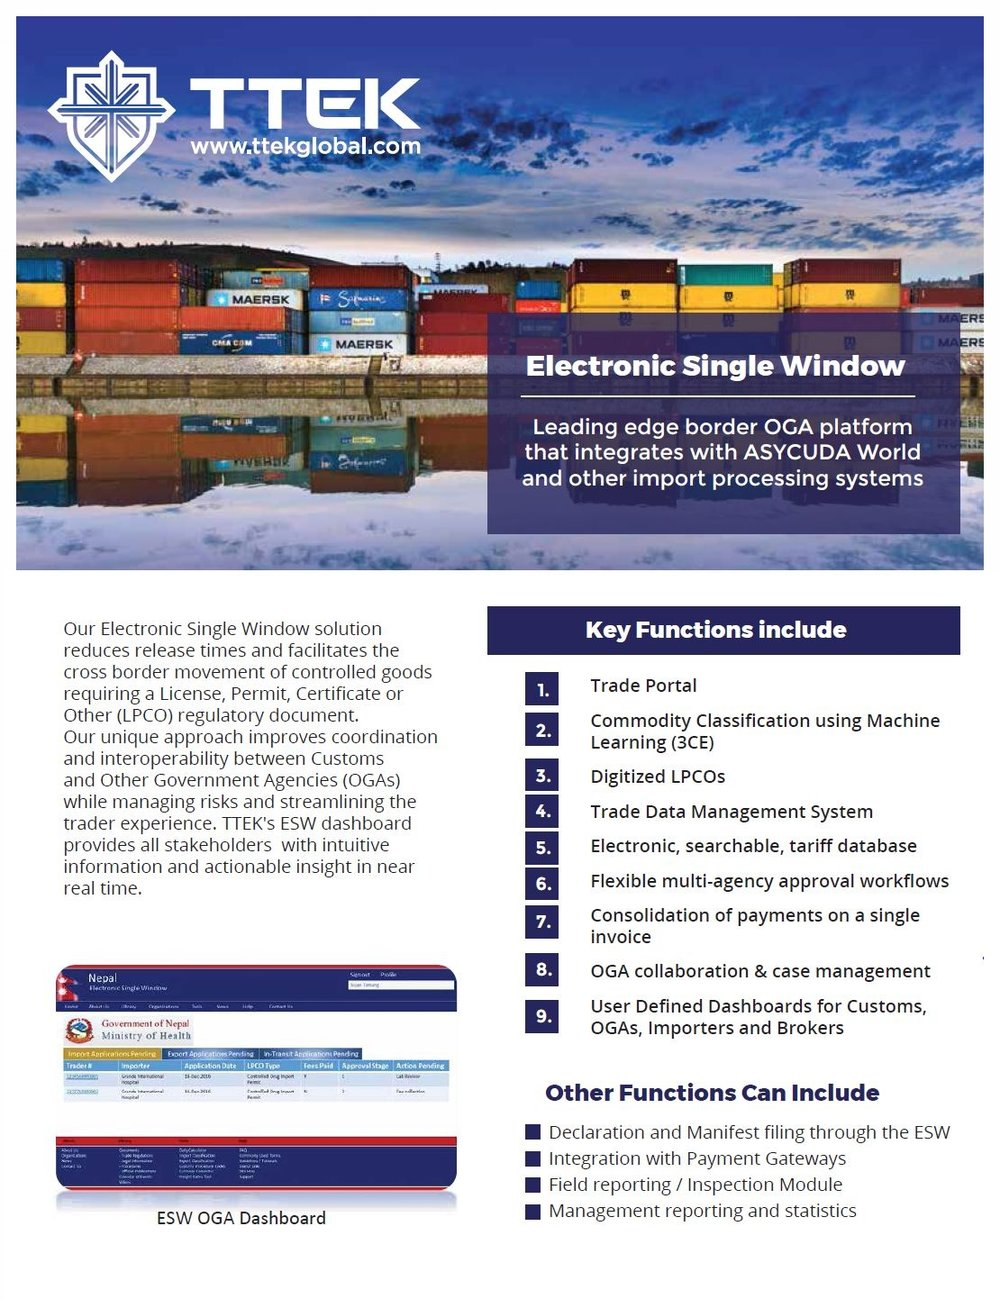 "Our ESW solution can optimize the management of trade facilitation and provide a Single Window for the exchange of trade-related documents between the trading community, customs, and Other Government Agencies (OGAs). - Our ESW provides a public ""one stop"" user-friendly repository for comprehensive tariff and regulatory trade information, government advisories, and training materials.Download our ESW Brochure in PDF Format."